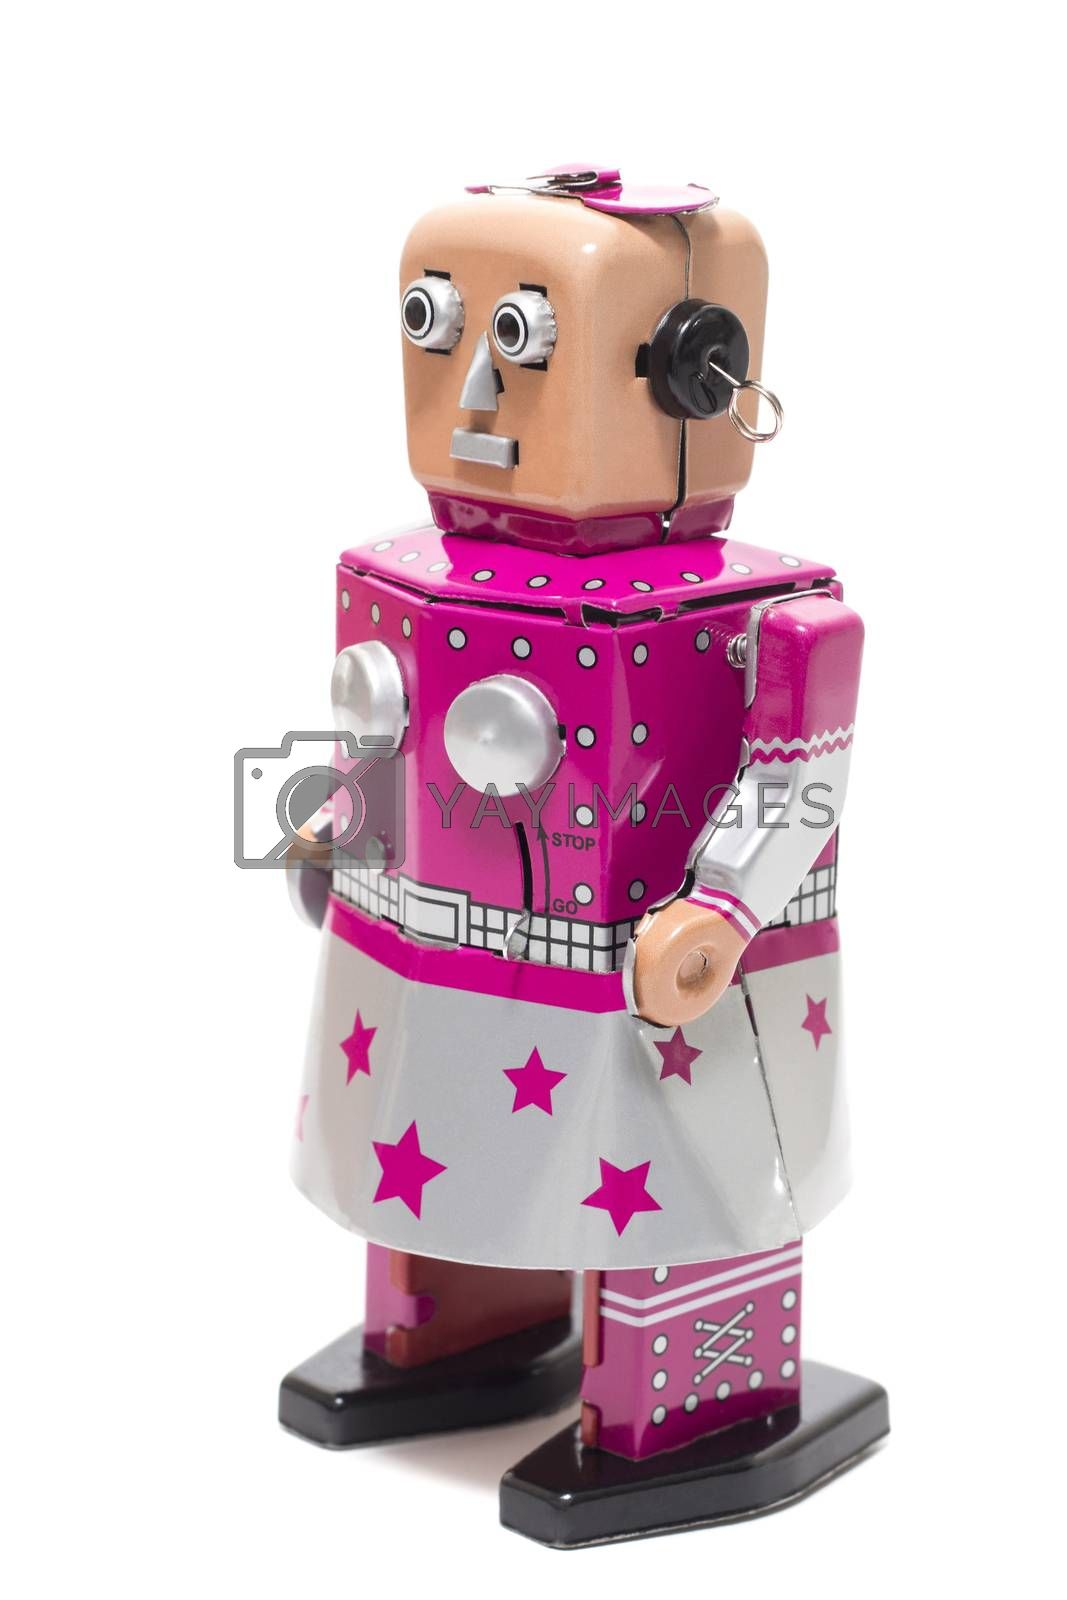 Vintage retro female tin toy robot isolated on a white background.